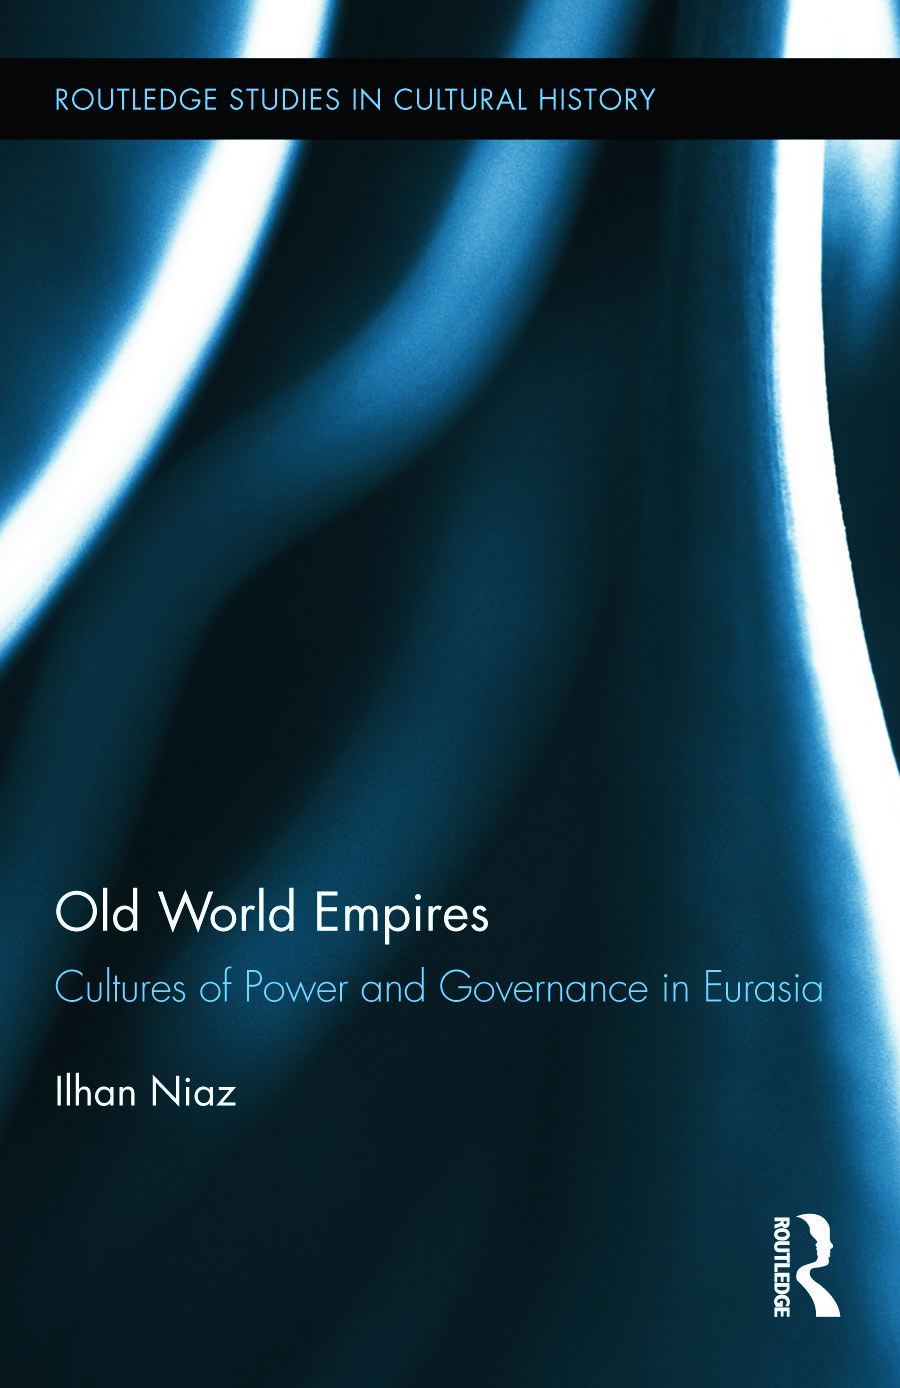 Old World Empires: Cultures of Power and Governance in Eurasia book cover